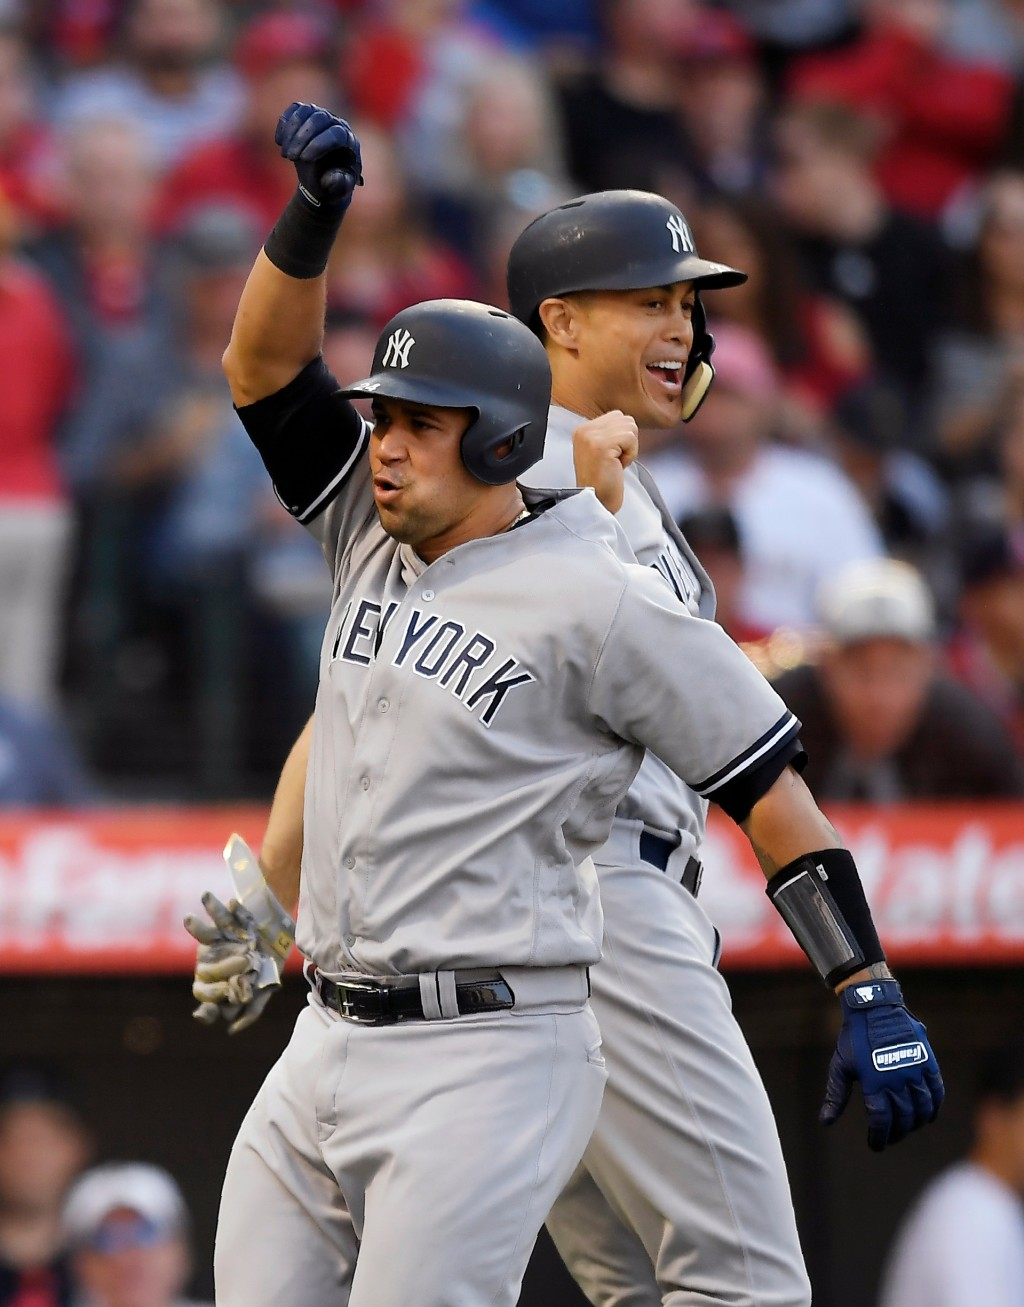 New York Yankees' Gary Sanchez, left, celebrates with Giancarlo Stanton after hitting a two-run home run during the fourth inning of a baseball game a...